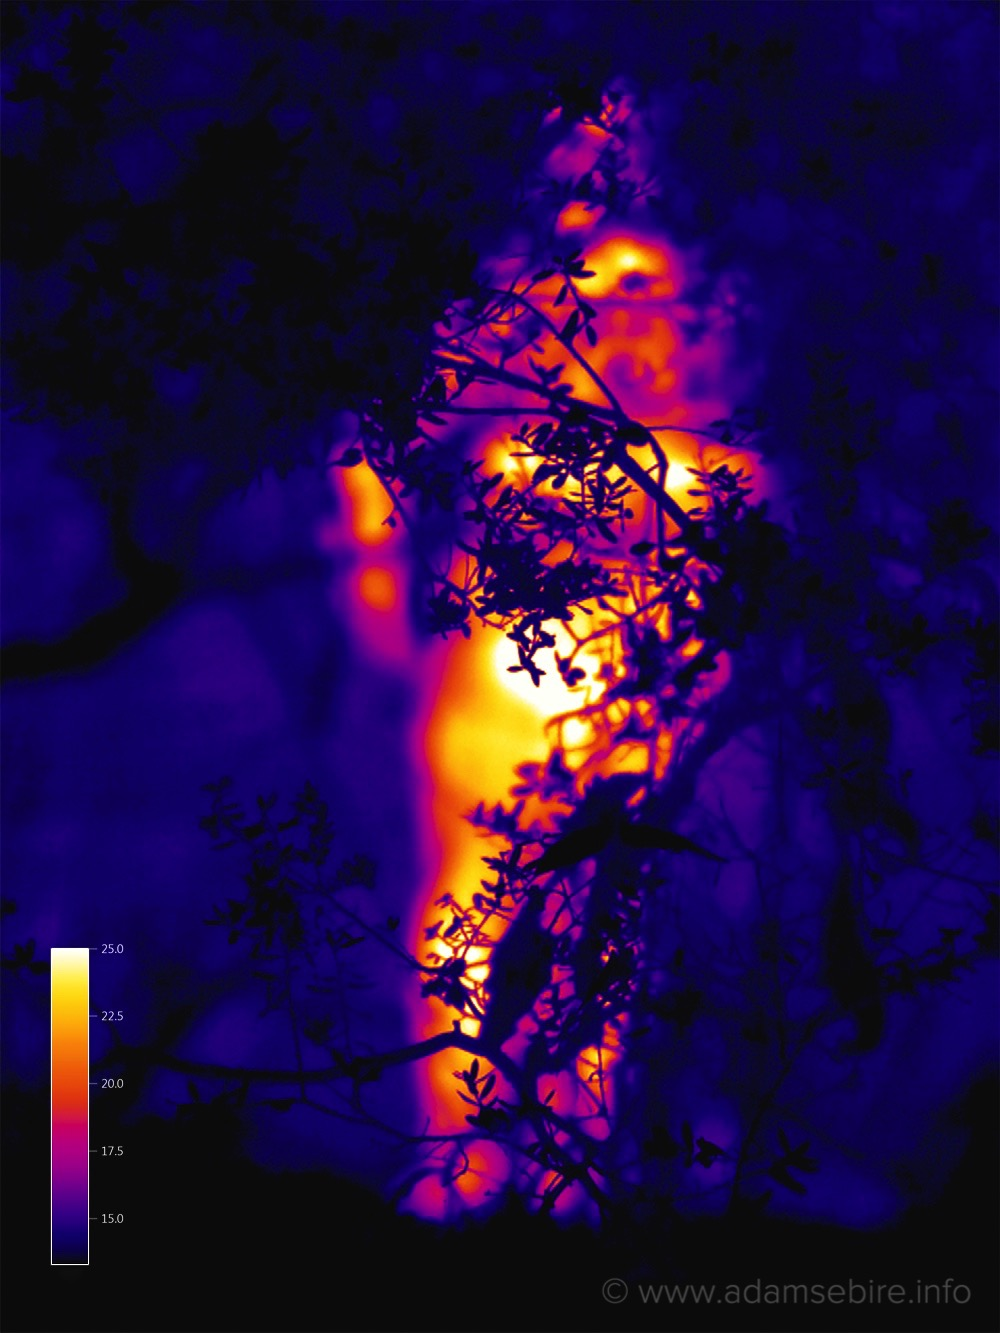 in the heat of the moment - Thermographic stills & video art (using infra-red thermal imaging) created with scientific instruments borrowed from climate change researchers. (2015-ongoing).More →